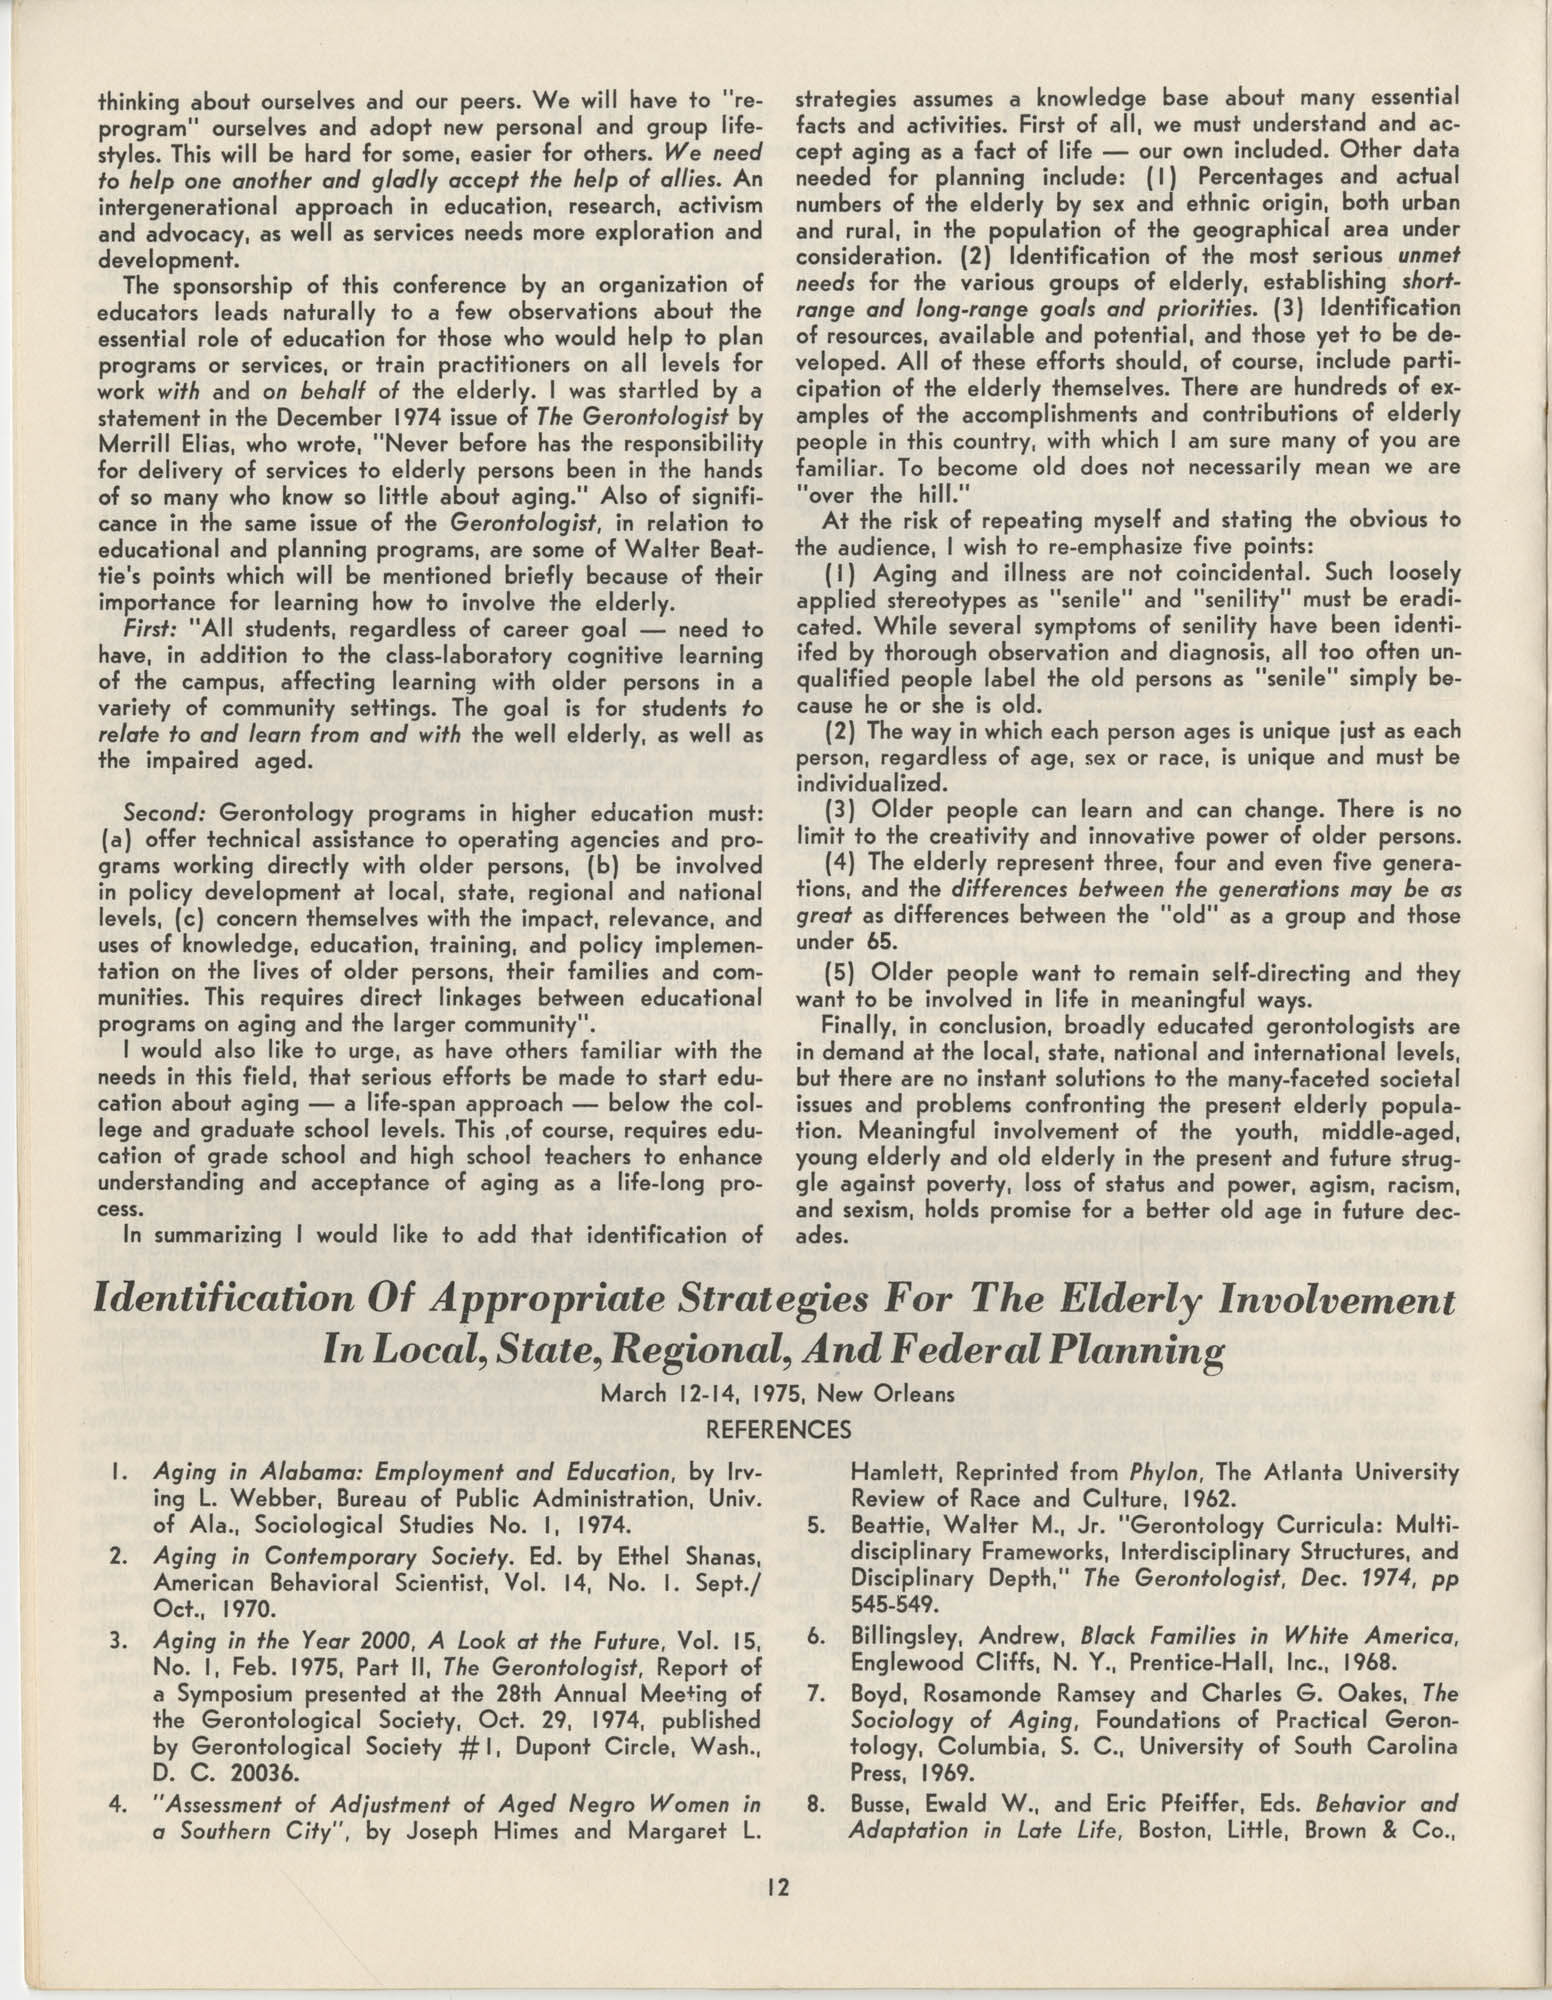 Black Educators Council for Human Services Conference on Aging, March 1975, Page 12